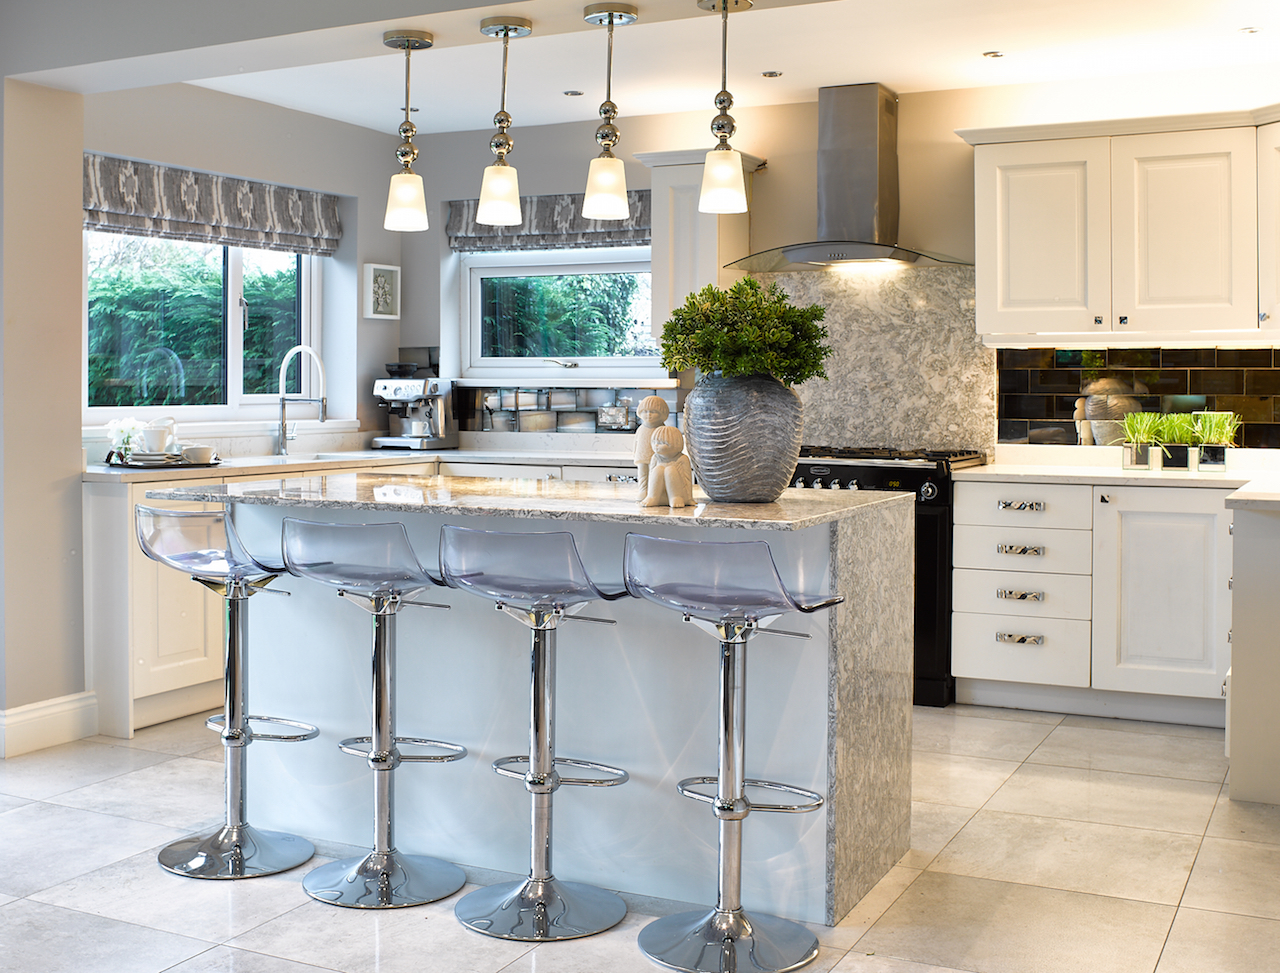 Stretton Kitchen Renovation, Elstead Lighting, Interior Design, Cheshire